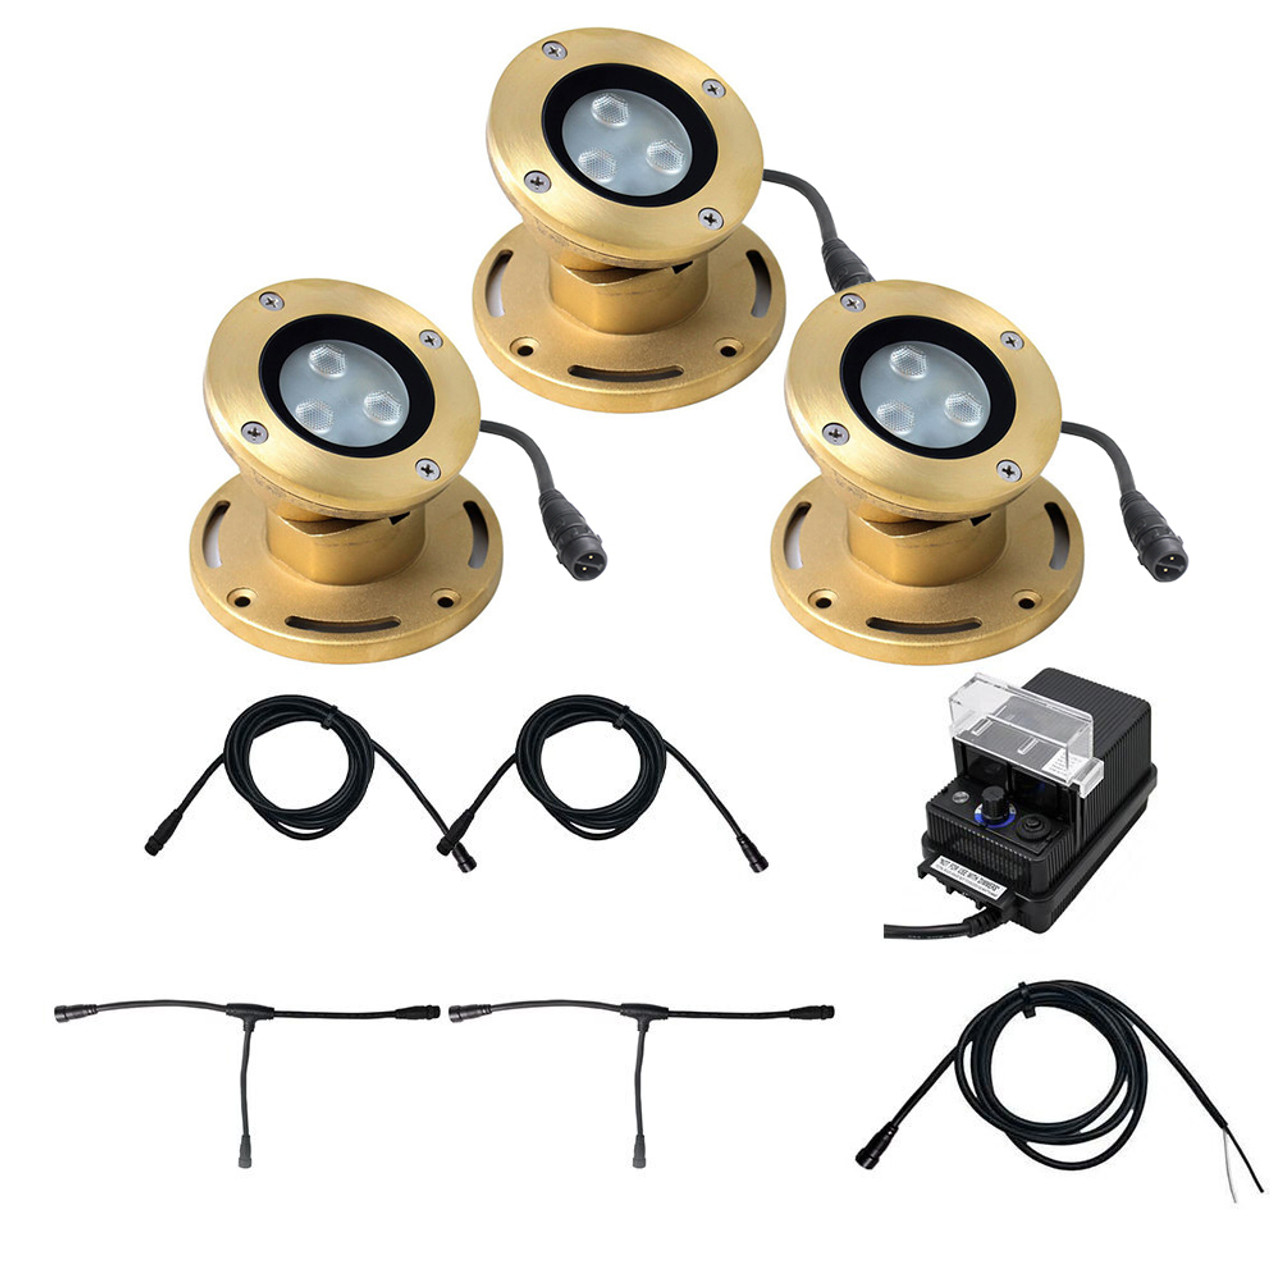 NSC LED DIY Lighting Kits